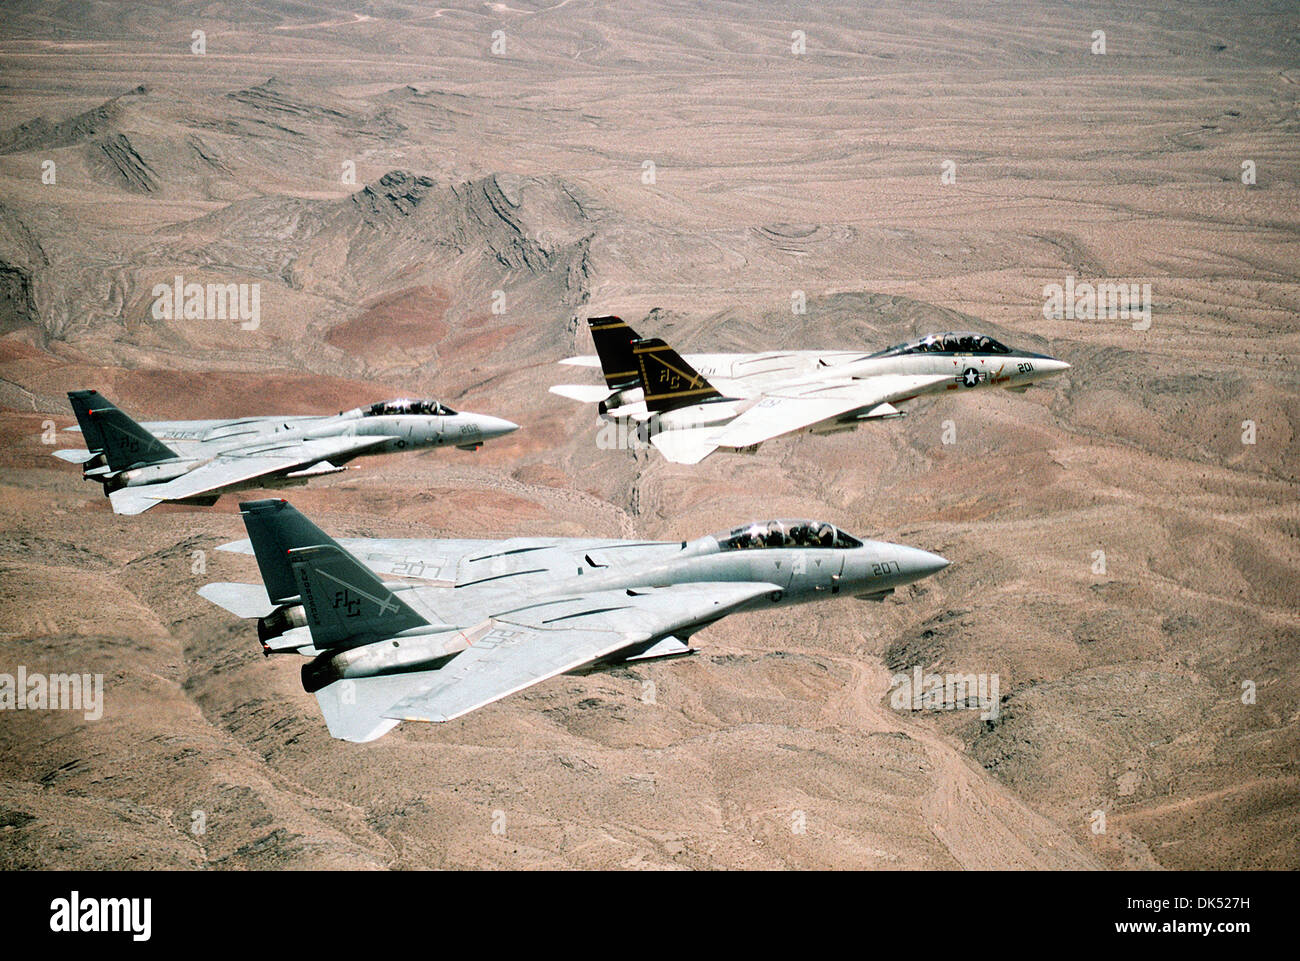 A US Navy Fighter Squadron of F-14A Tomcat fighter aircraft fly in formation over the desert during Operation Desert Storm February 7, 1991 in Kuwait. - Stock Image